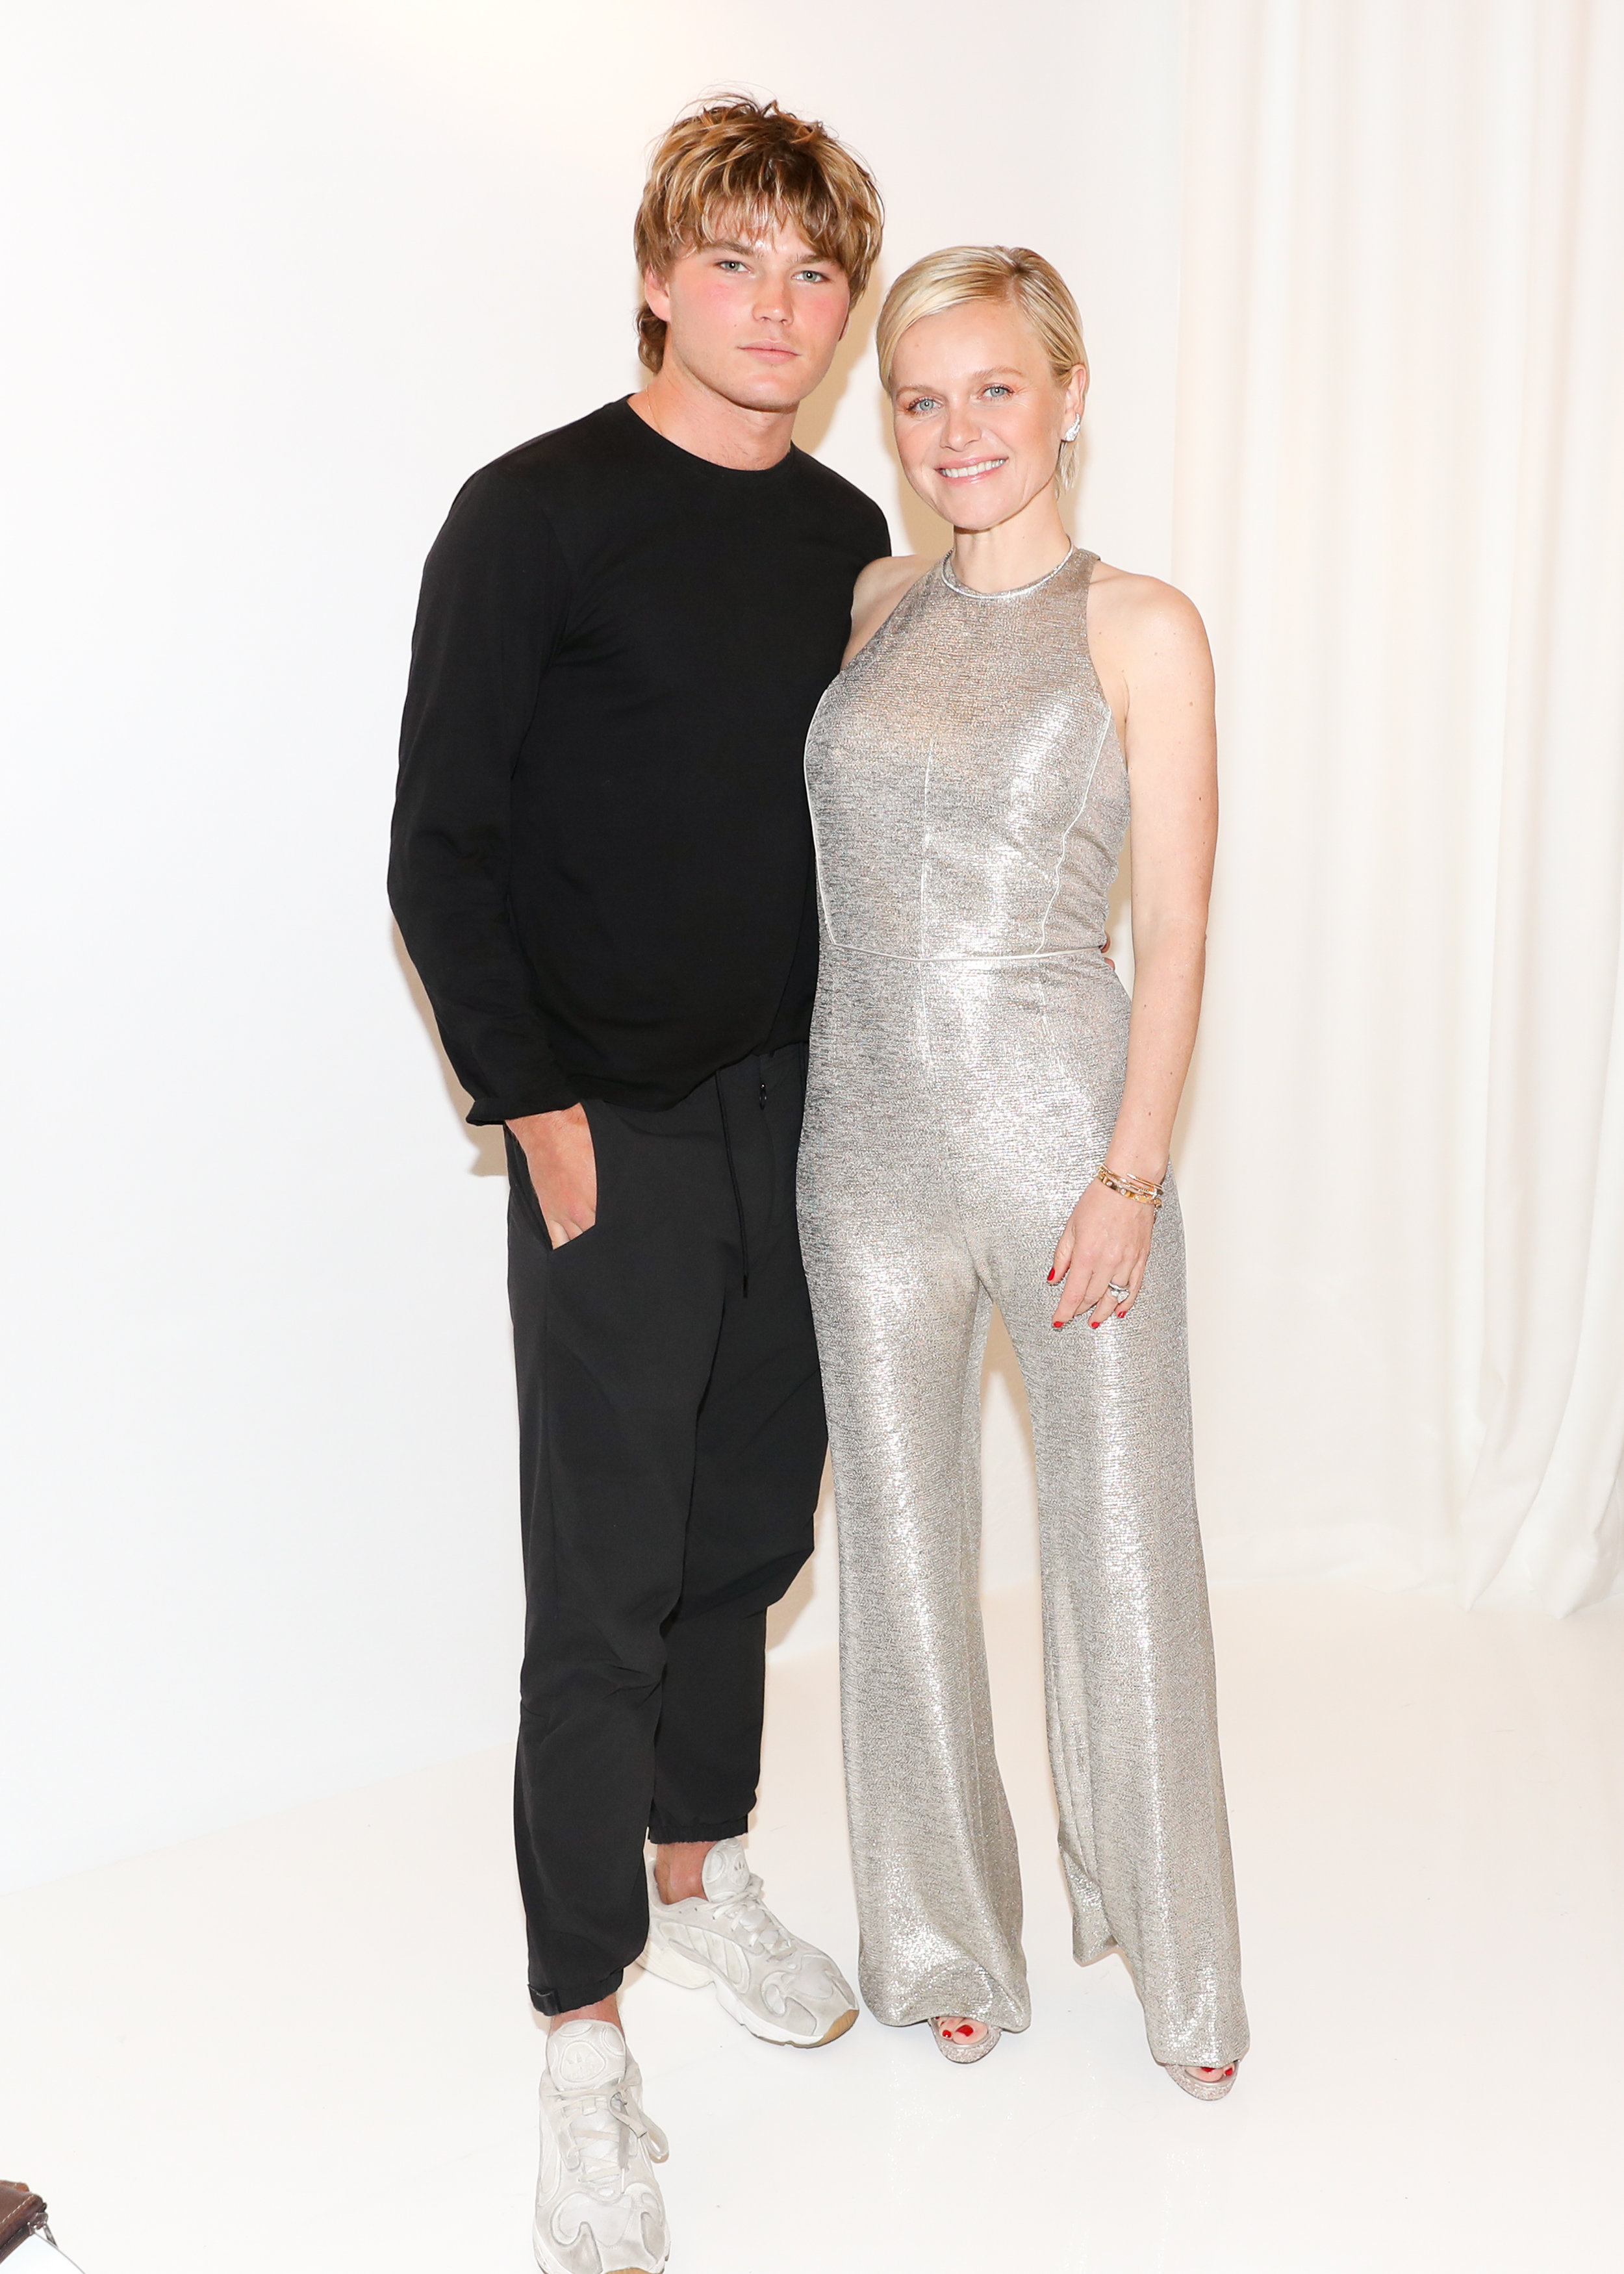 From Left To Right: Jordan Barrett and Dr. Barbara Sturm attend The Opening of The Dr. Barbara Sturm Zero Bond Boutique & Spa on Thursday, May 2, 2019. Photographed by Neil Rasmus/BFA.